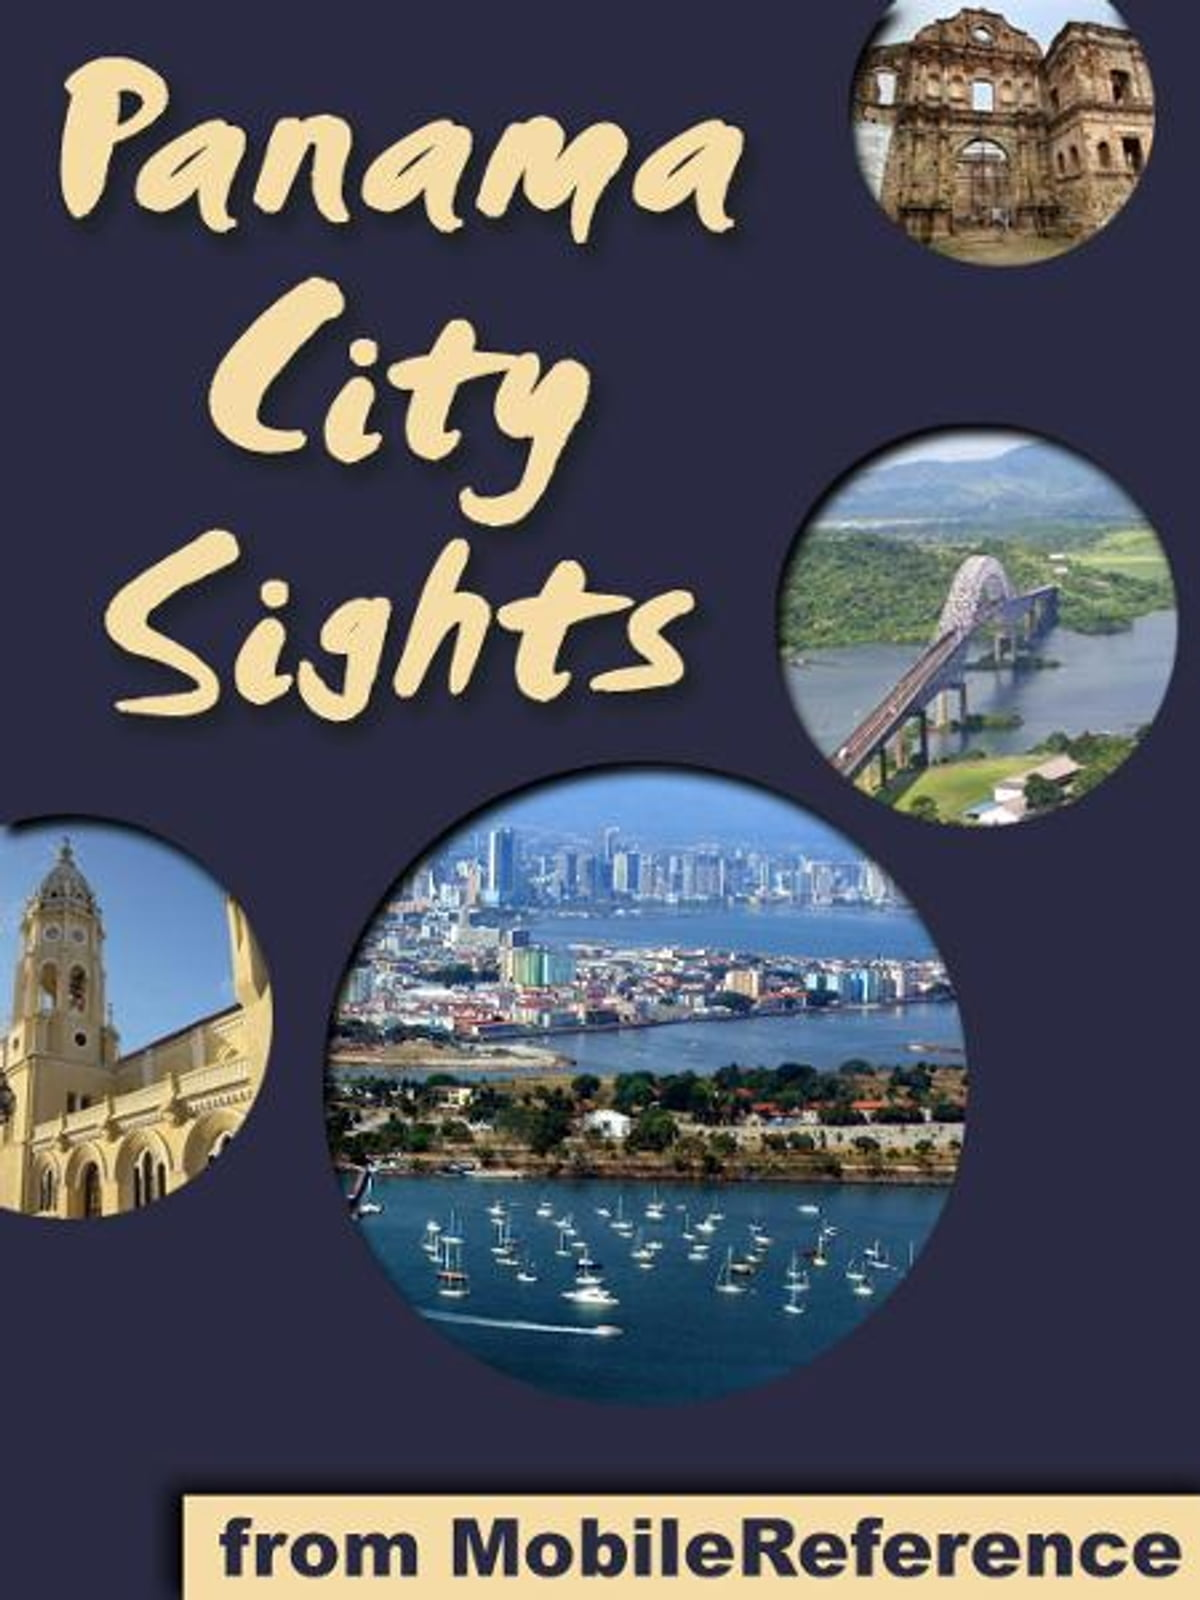 Panama City Sights: a travel guide to the top attractions in Panama City,  Panama (Mobi Sights) eBook by MobileReference - 9781611981995 | Rakuten Kobo